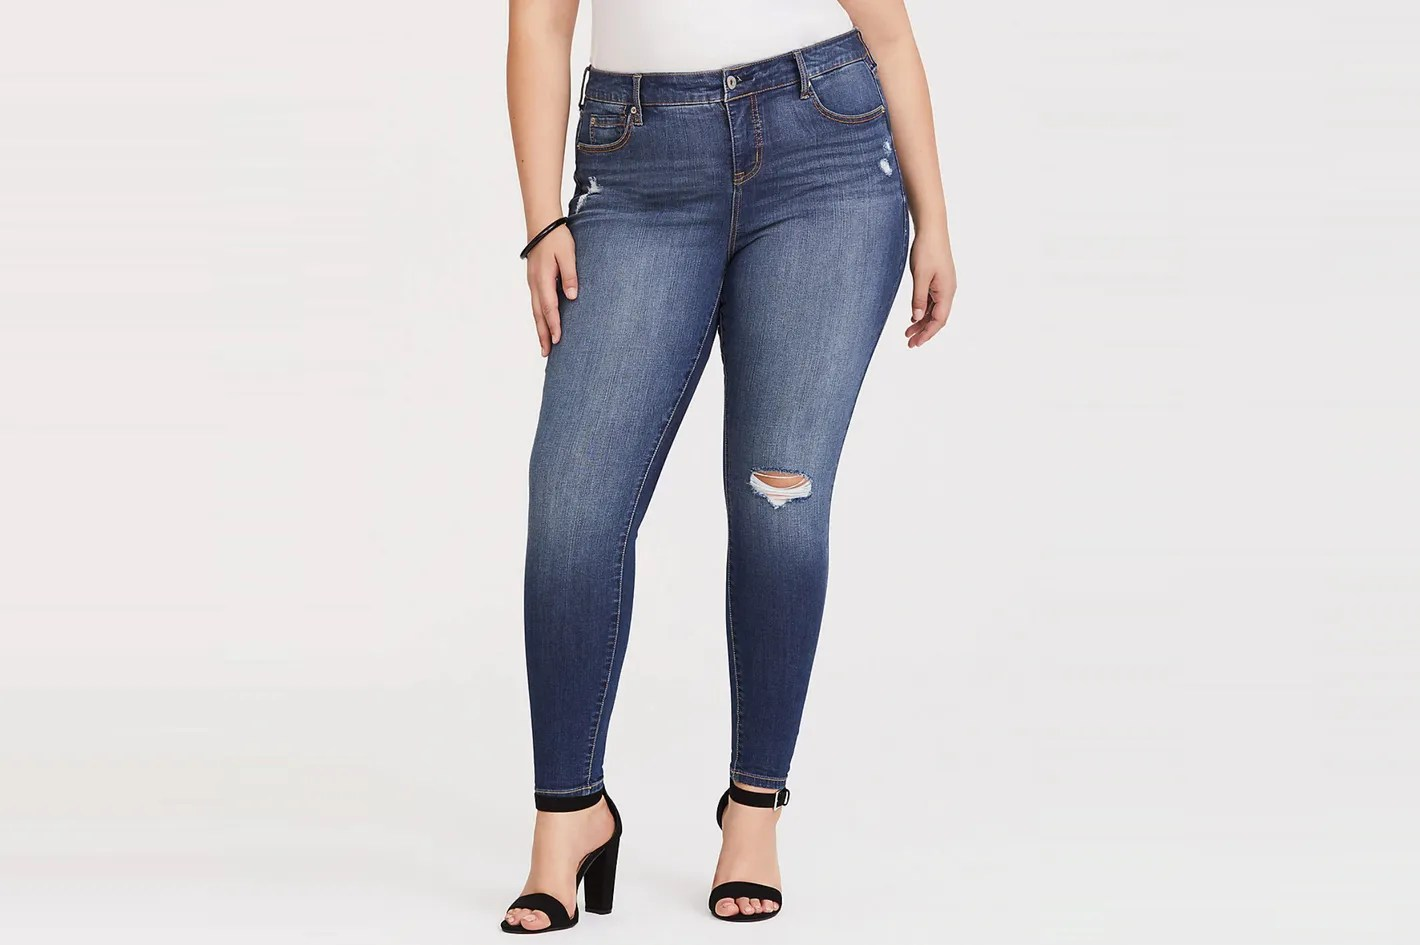 10 Best Plus Size Jeans According To Real Women 2018